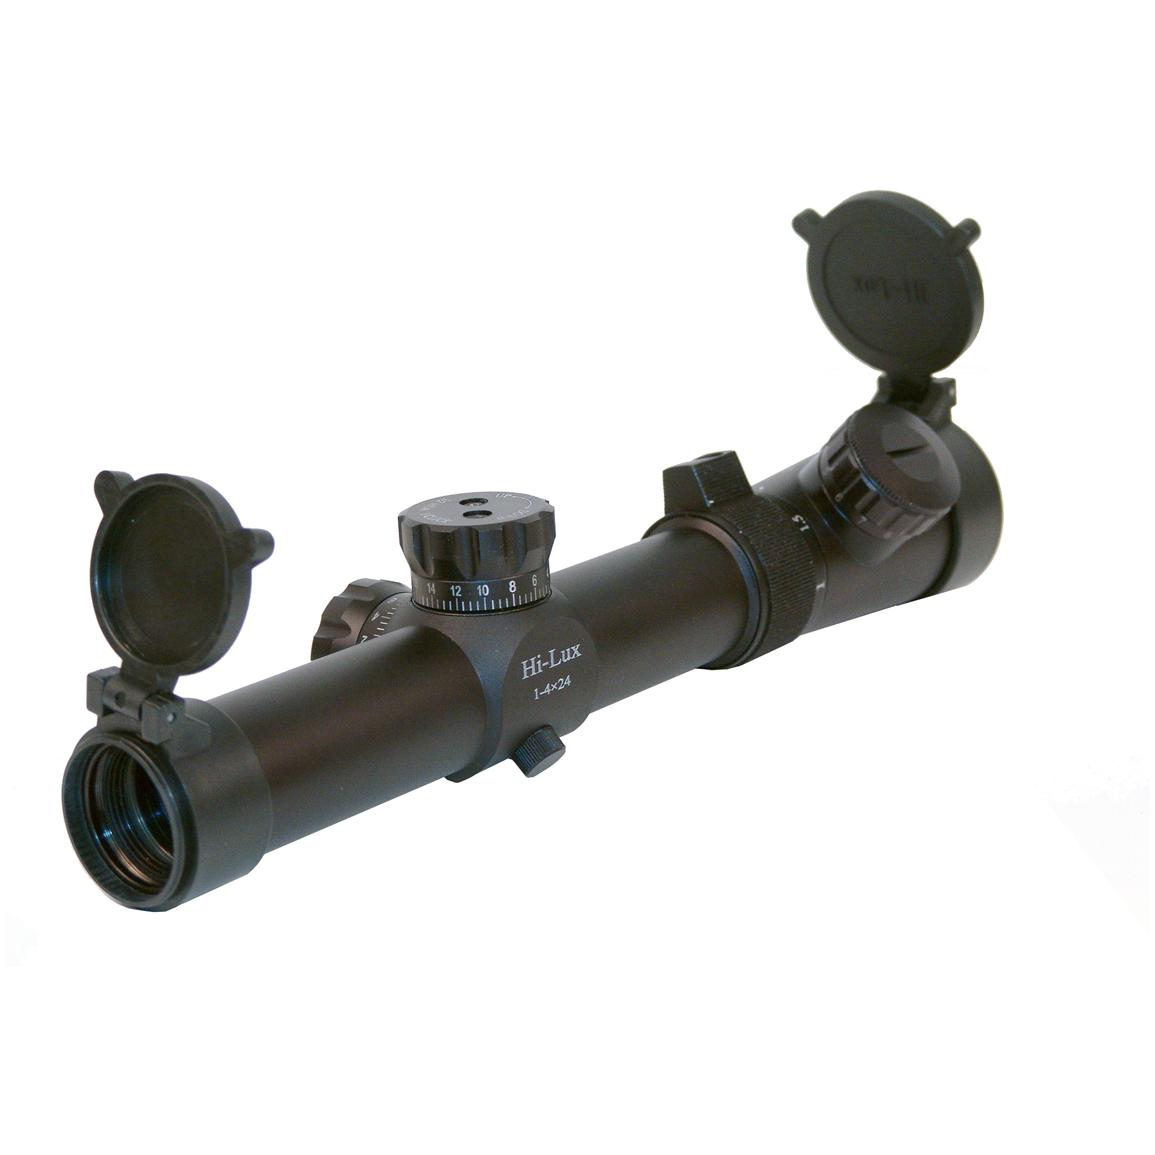 Hi-Lux 1-4x24 CMR-AK762 Scope